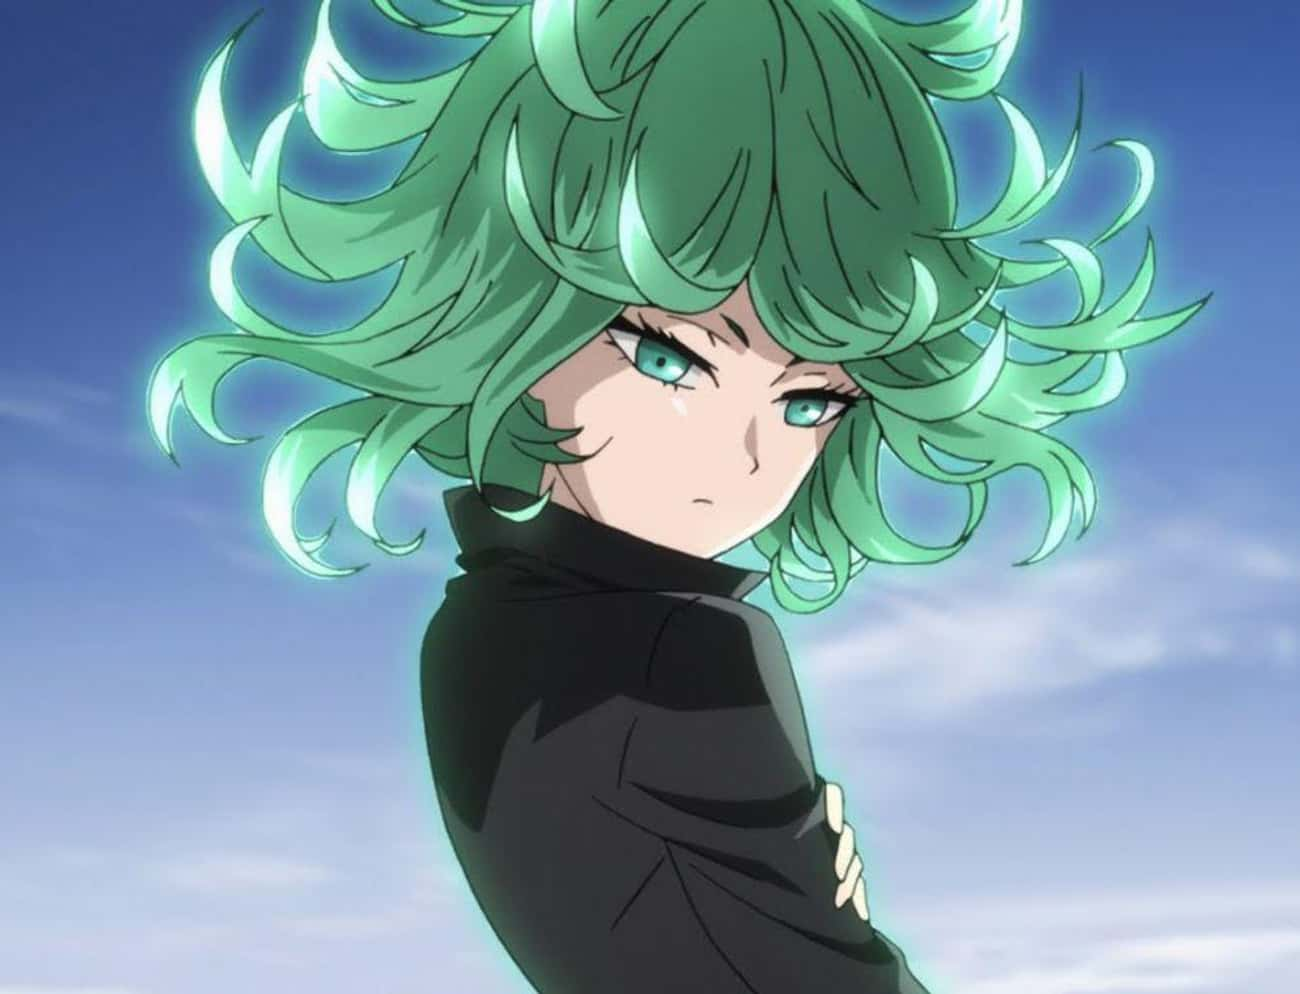 Tatsumaki - 'One Punch Man'